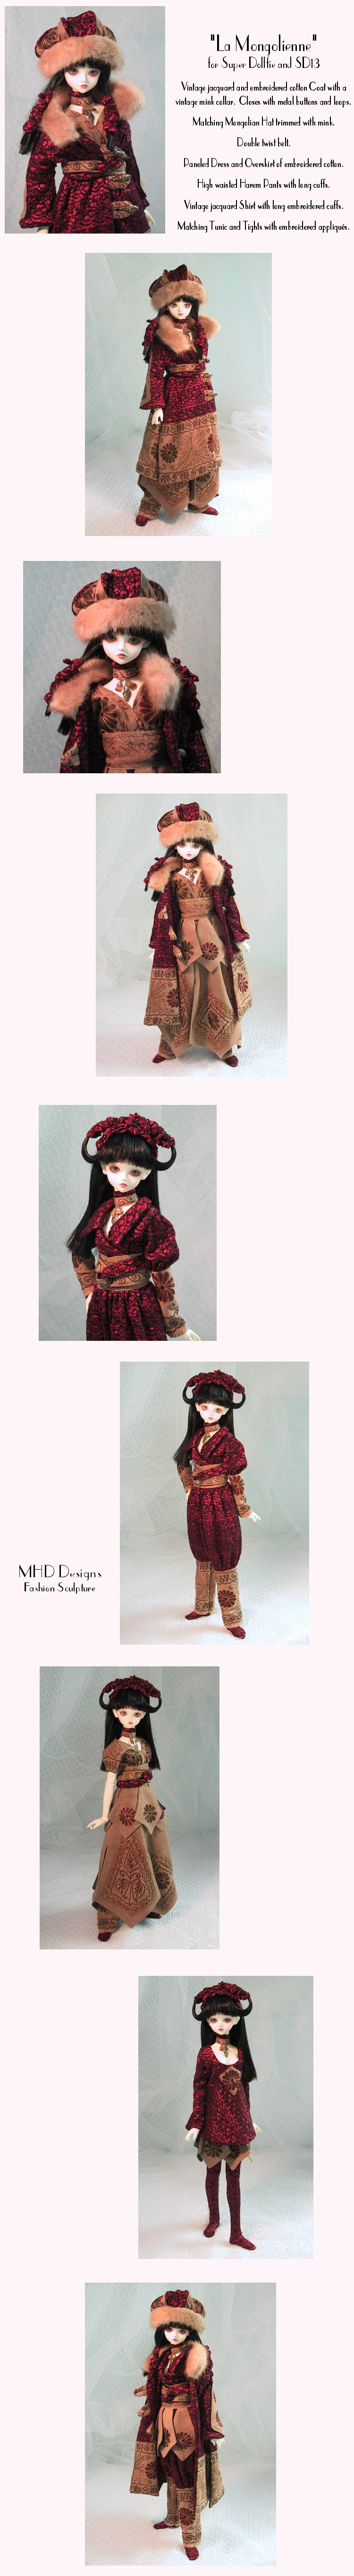 The Mongolian - a One of a Kind Design for Super Dollfie and SD13